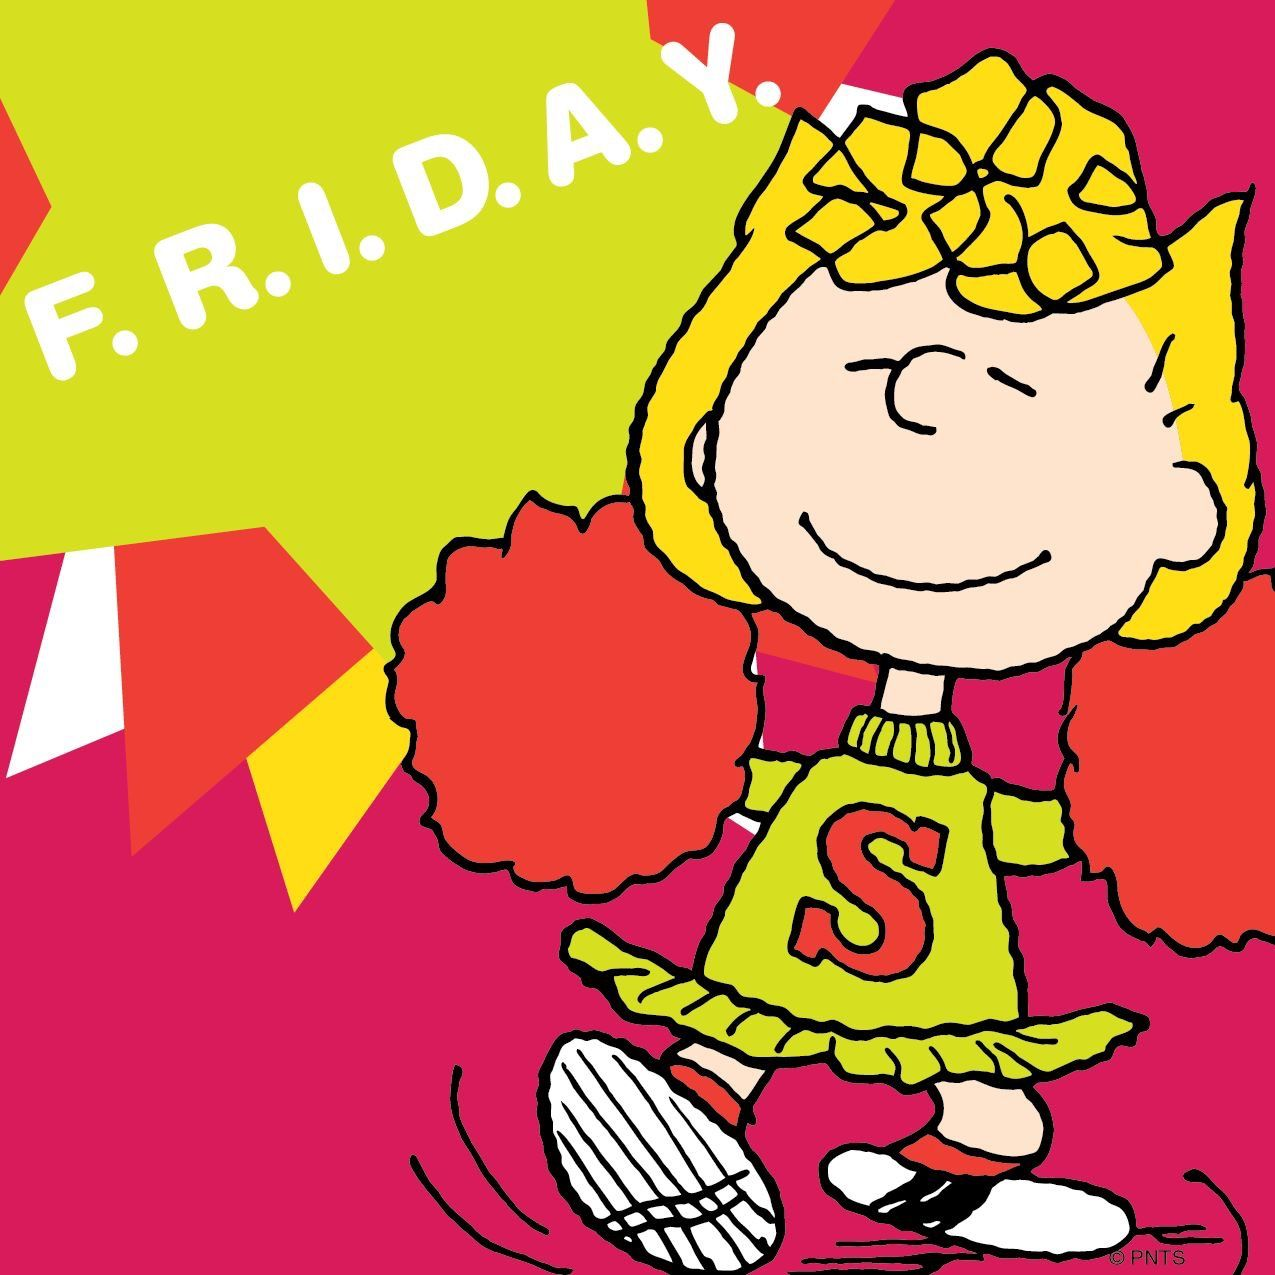 Pin by Dawn Dooper on Snoopy & The Peanuts Gang   Snoopy